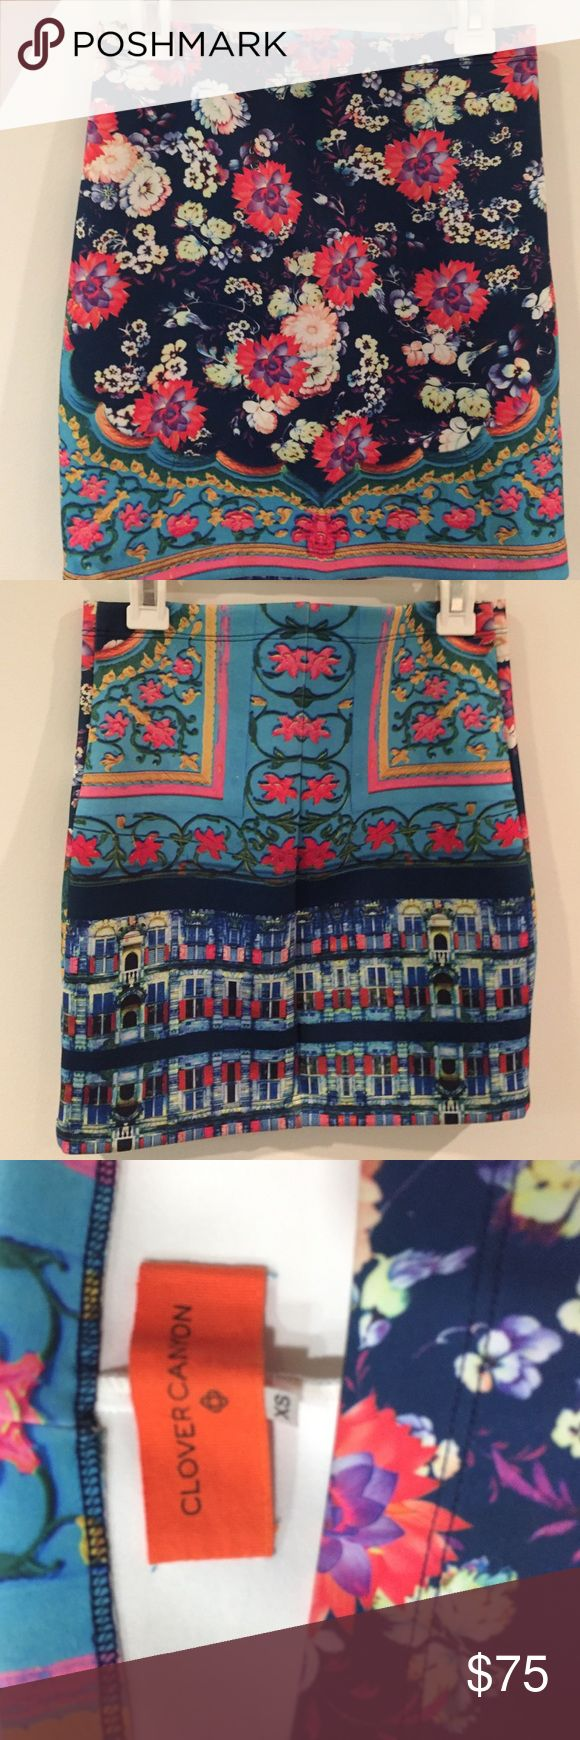 Stunning Clover Canyon skirt One of a kind from their SS15 collection Clover Canyon Skirts Mini